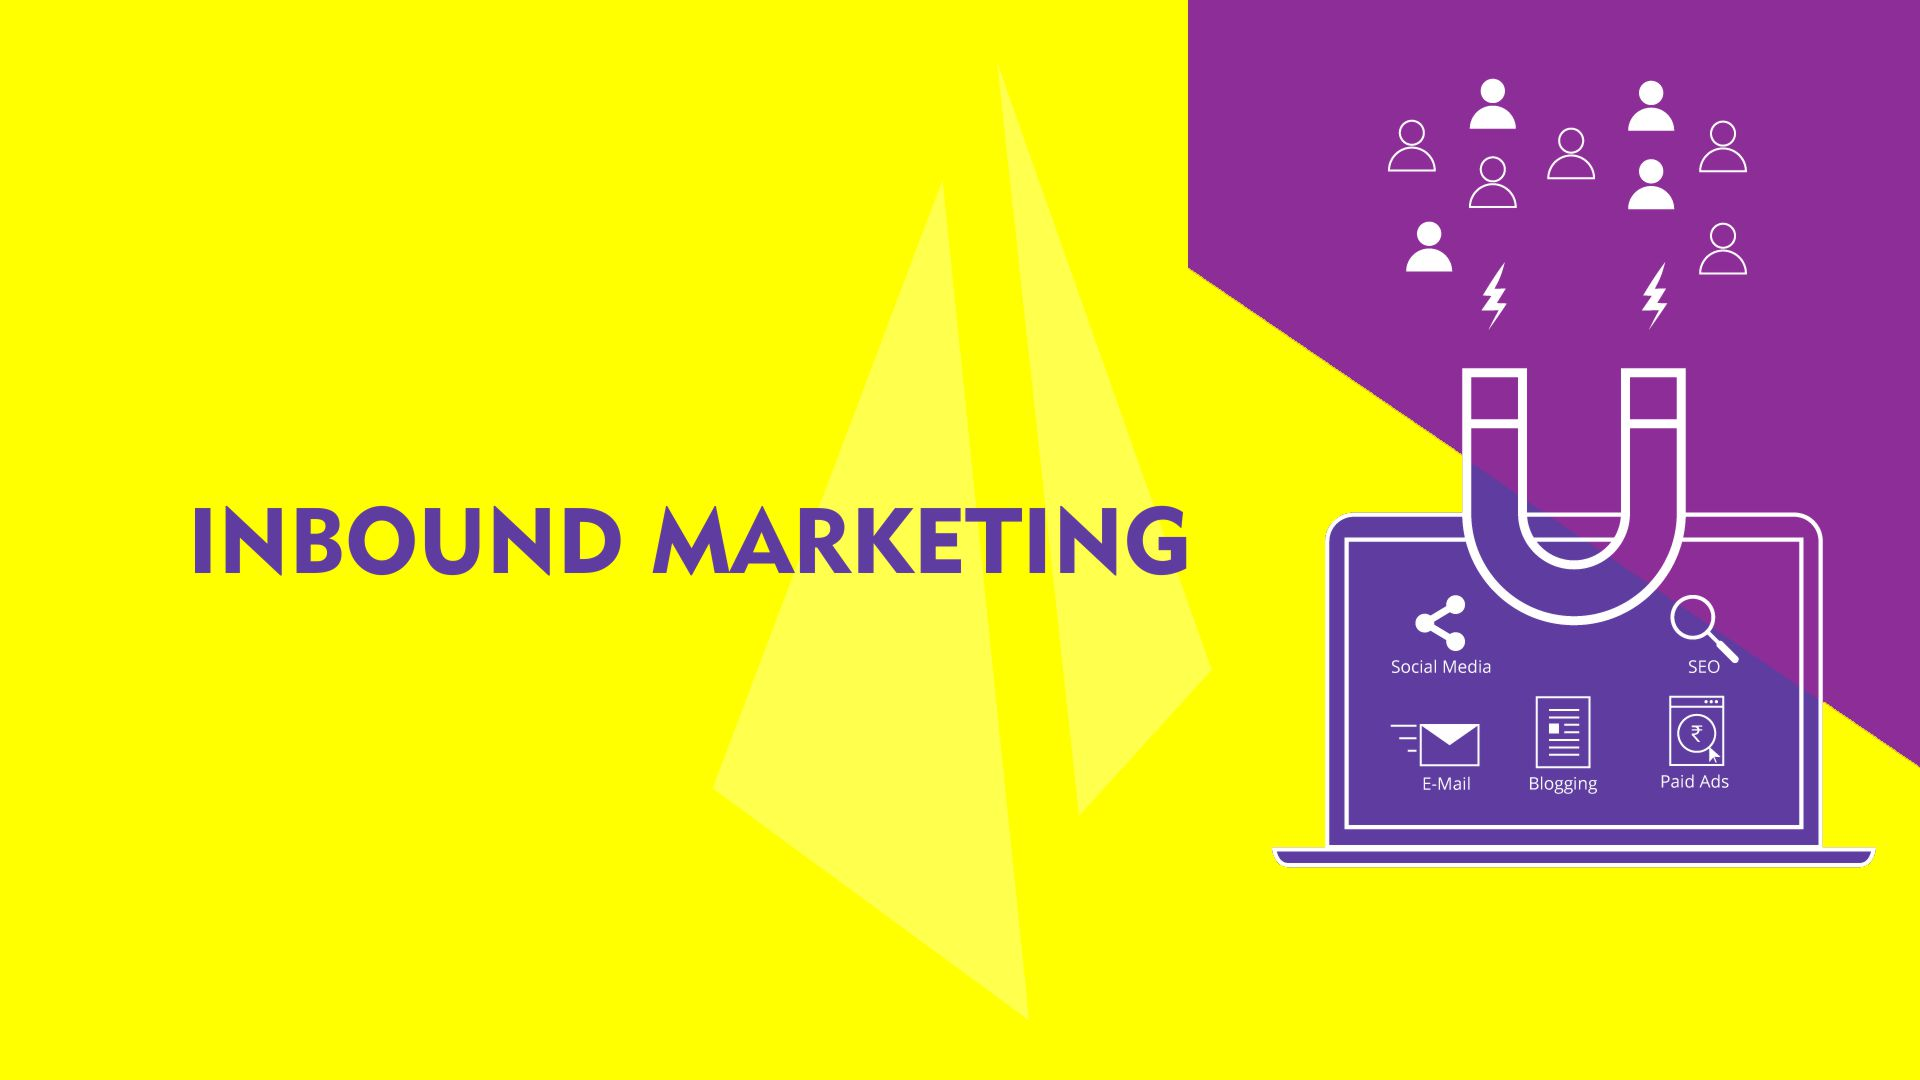 apa itu Inbound Marketing